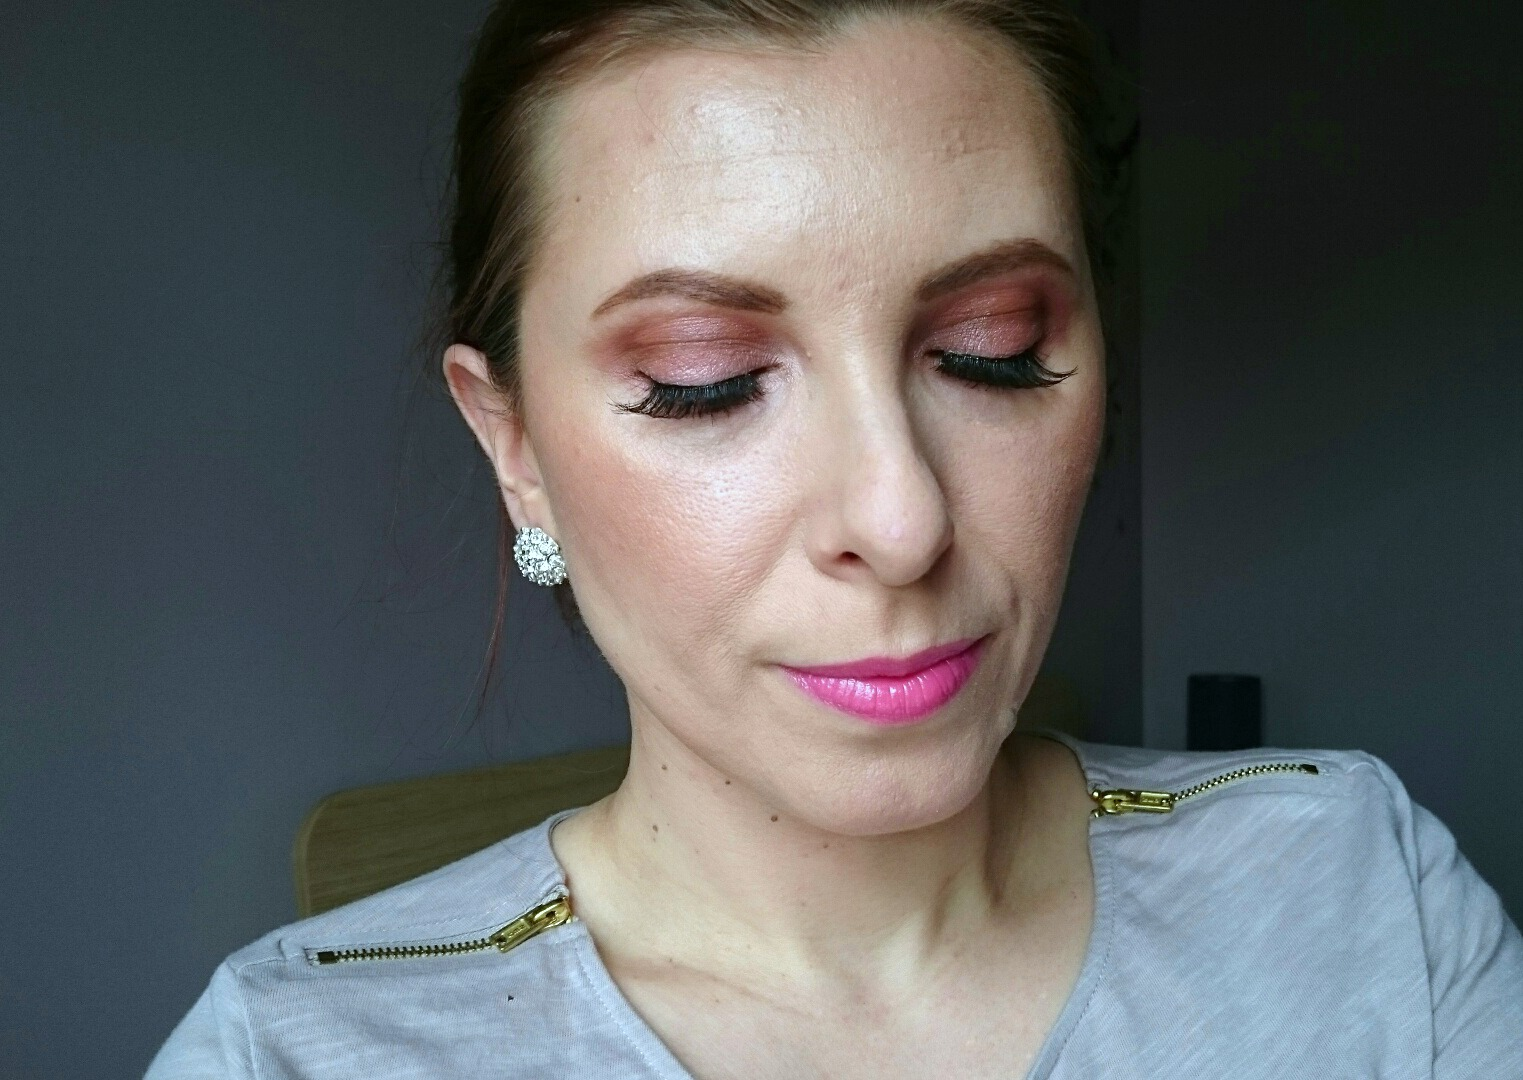 JLo Oscars 2015 inspired makeup look